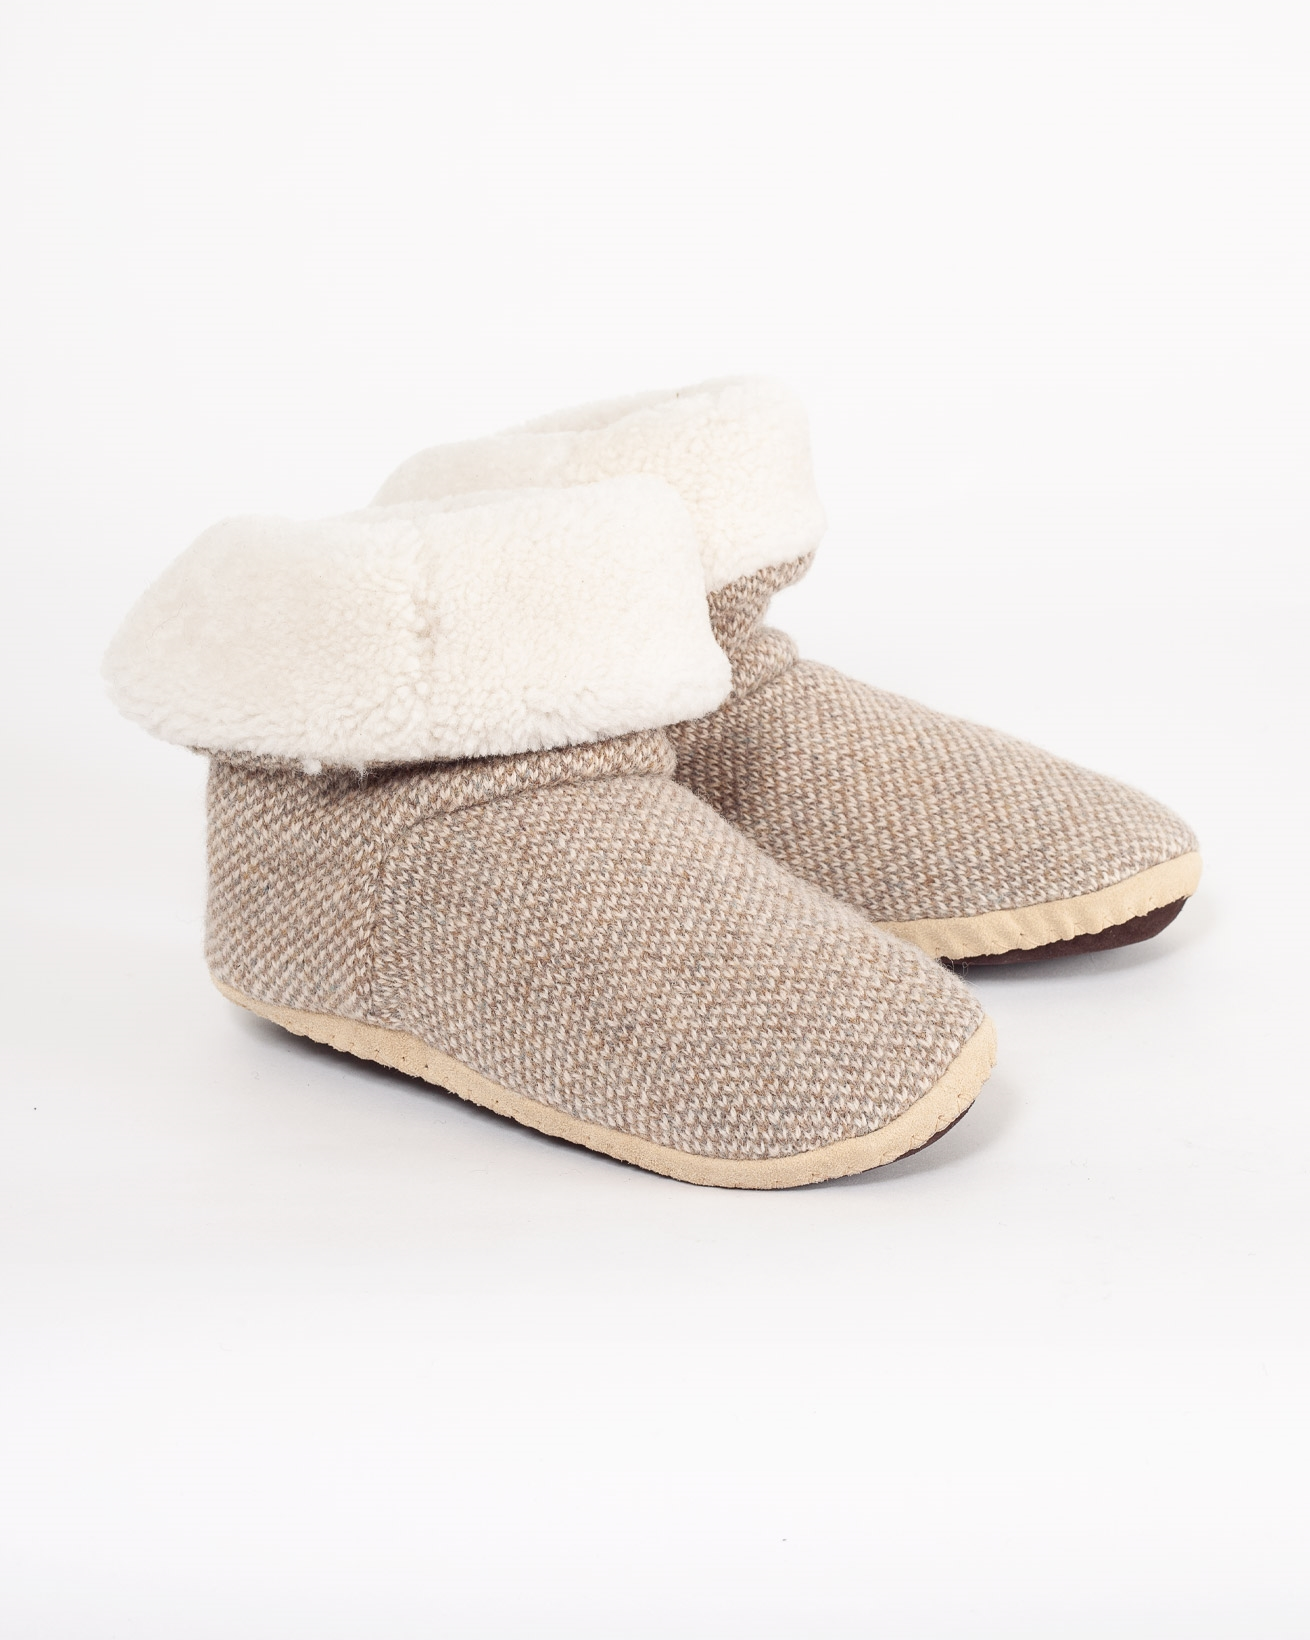 Soft Sole Slouch Boots - Size 5 - Pebble - 1006